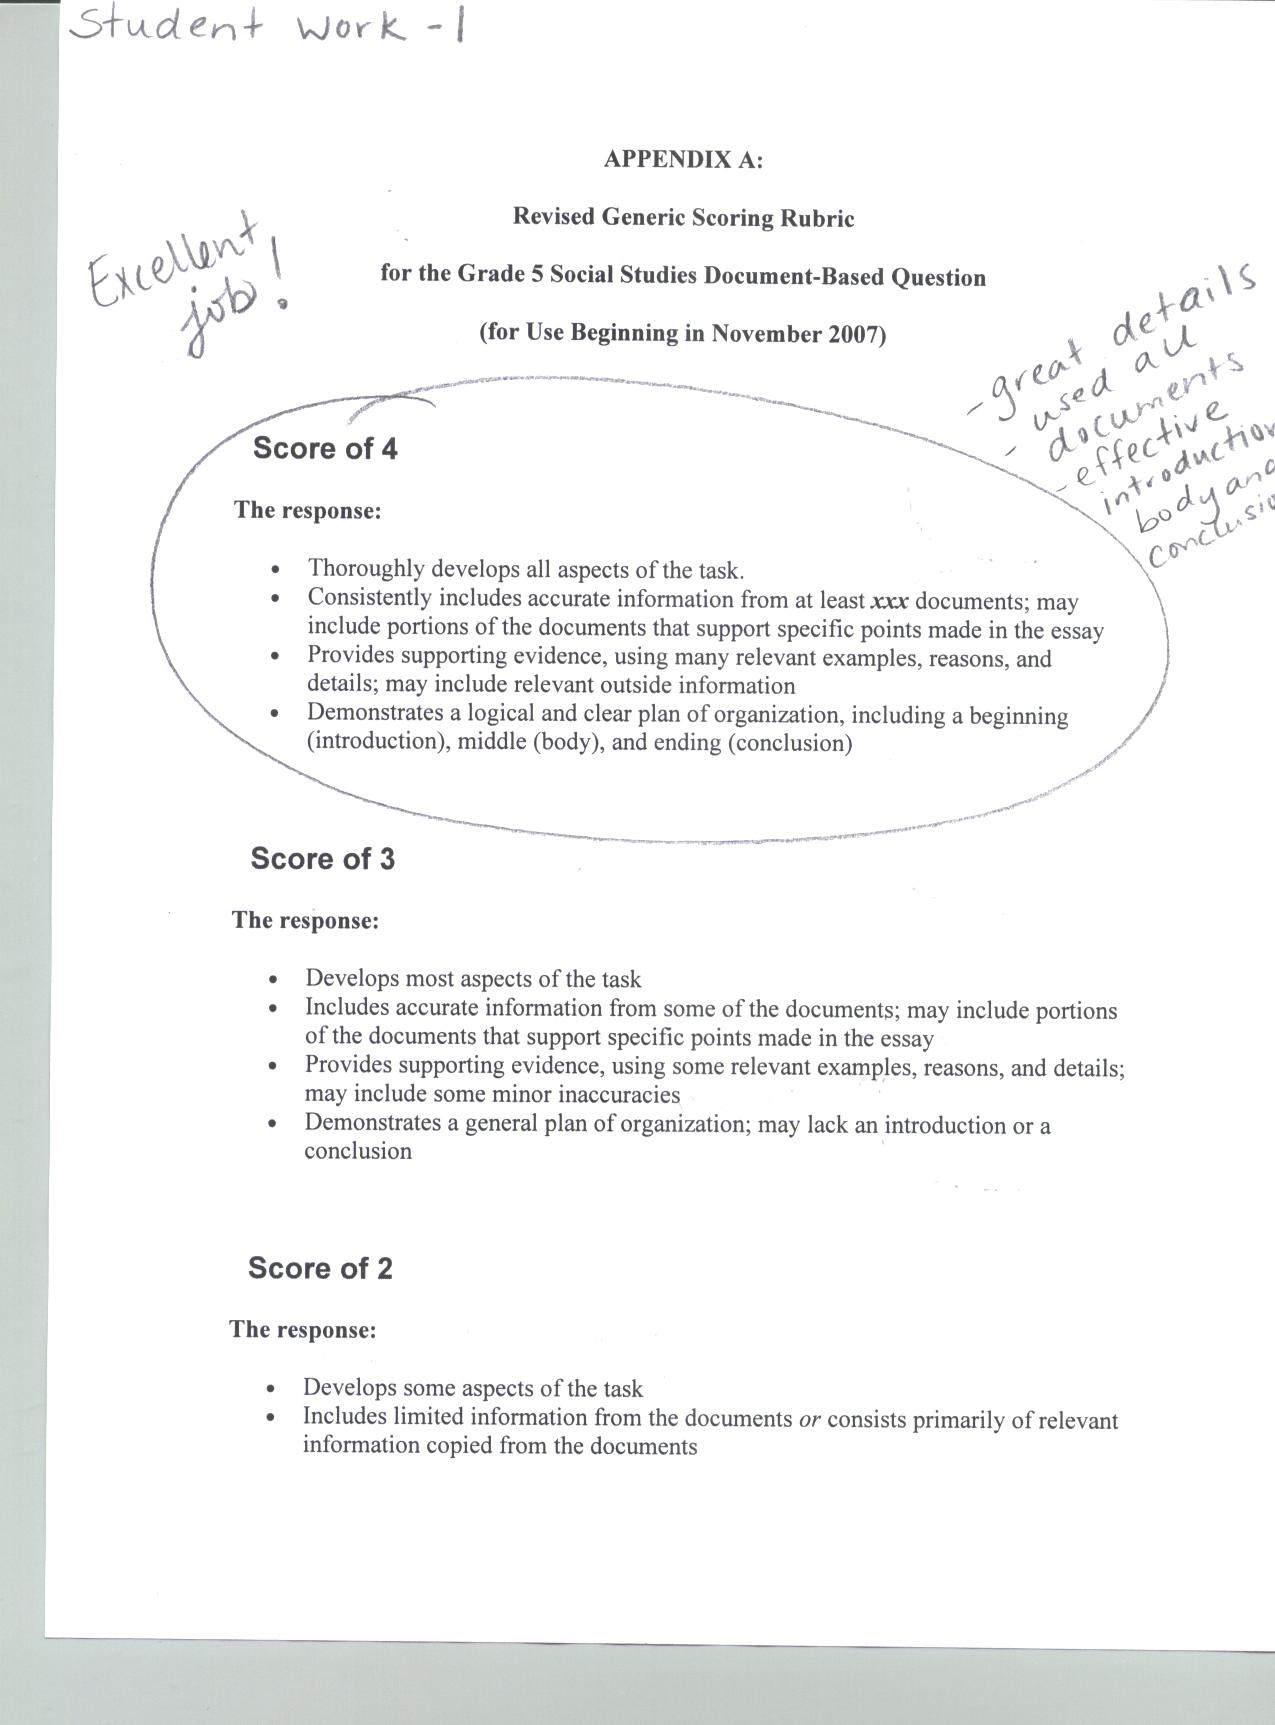 scoring student responses to essay questions Mcas student work/scoring guides this page provides access to each released essay item, constructed-response item, open-response item, and writing prompt included on the mcas tests from the last five years the scoring guide that accompanies each item and samples of student work at each score point for the item.